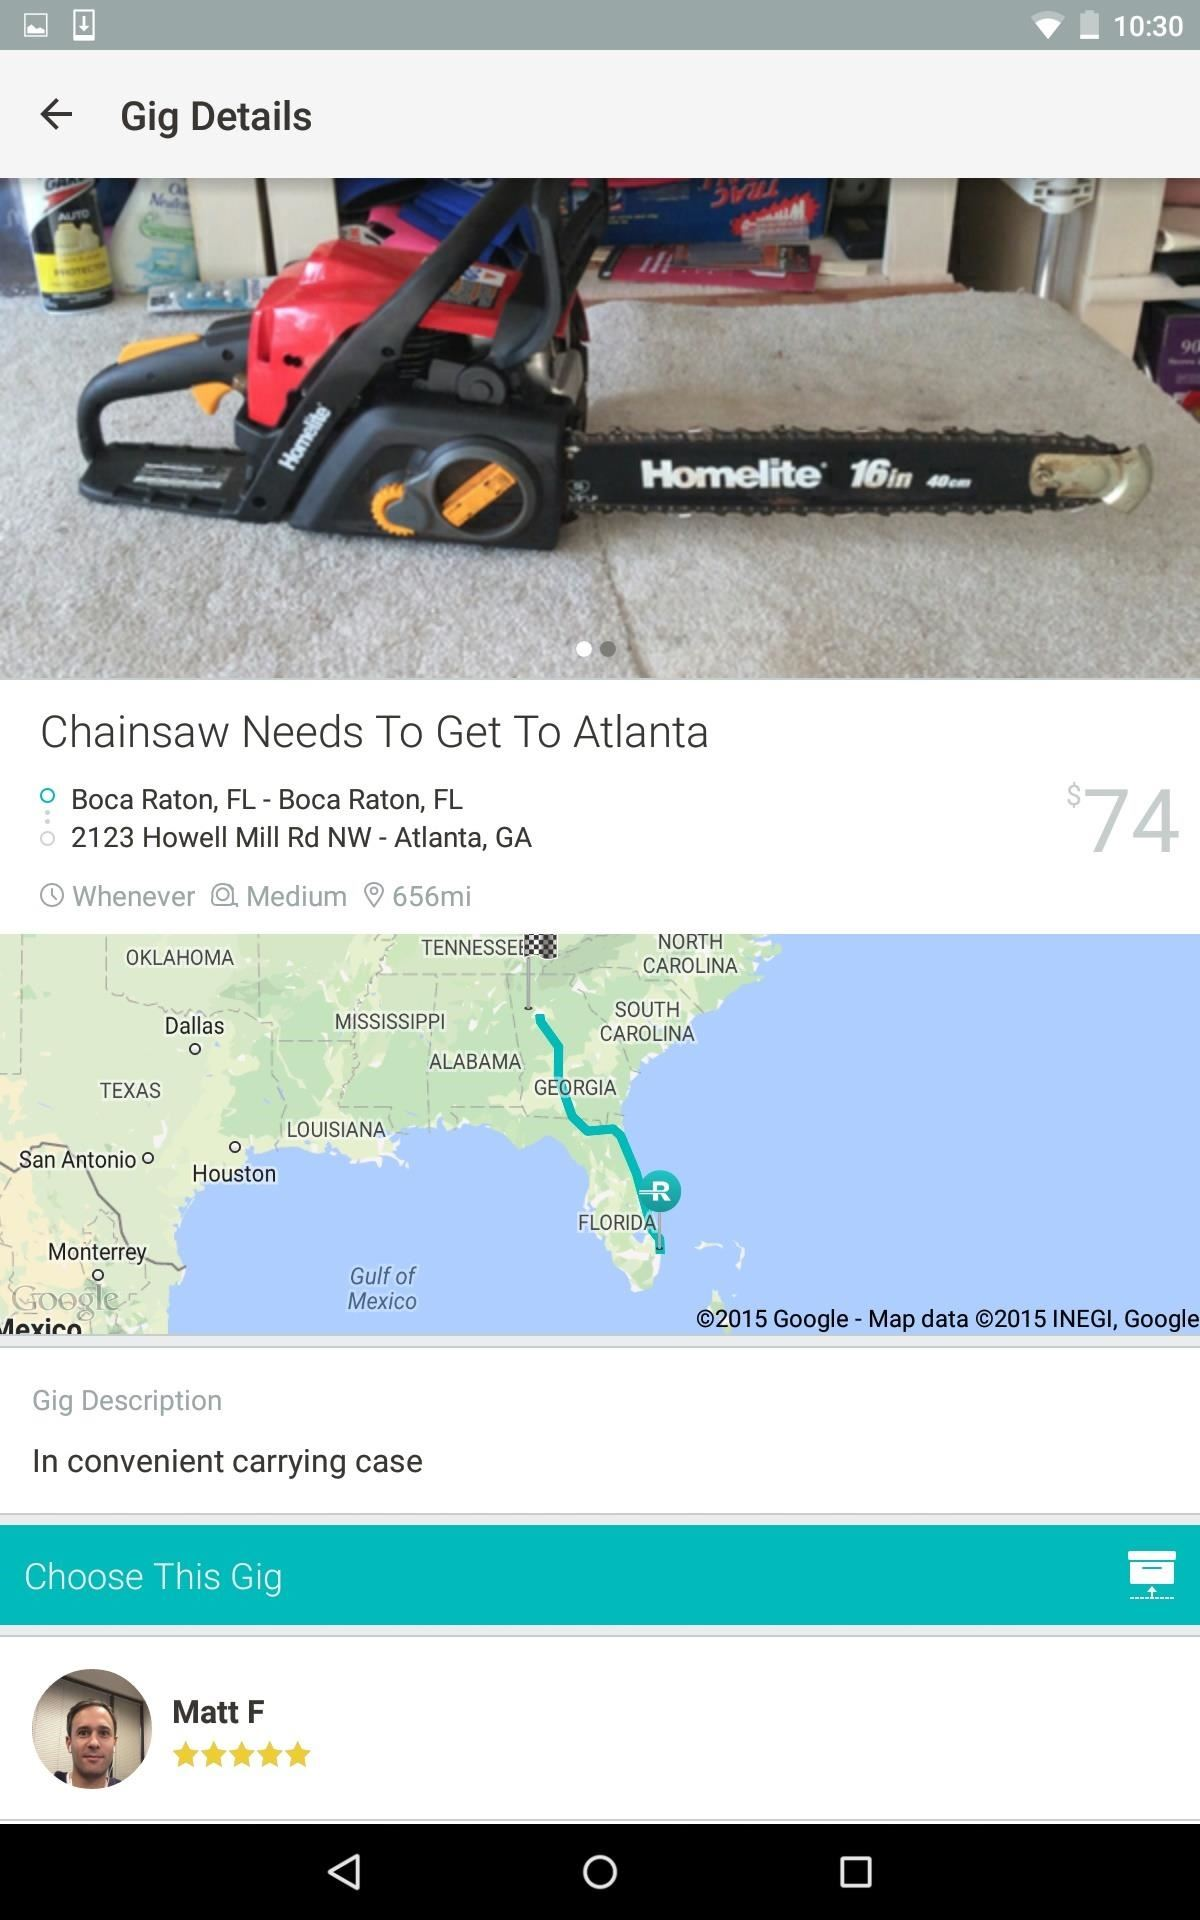 Roadie App Lets You Ship Things Cheaper & Make Money While You're Traveling